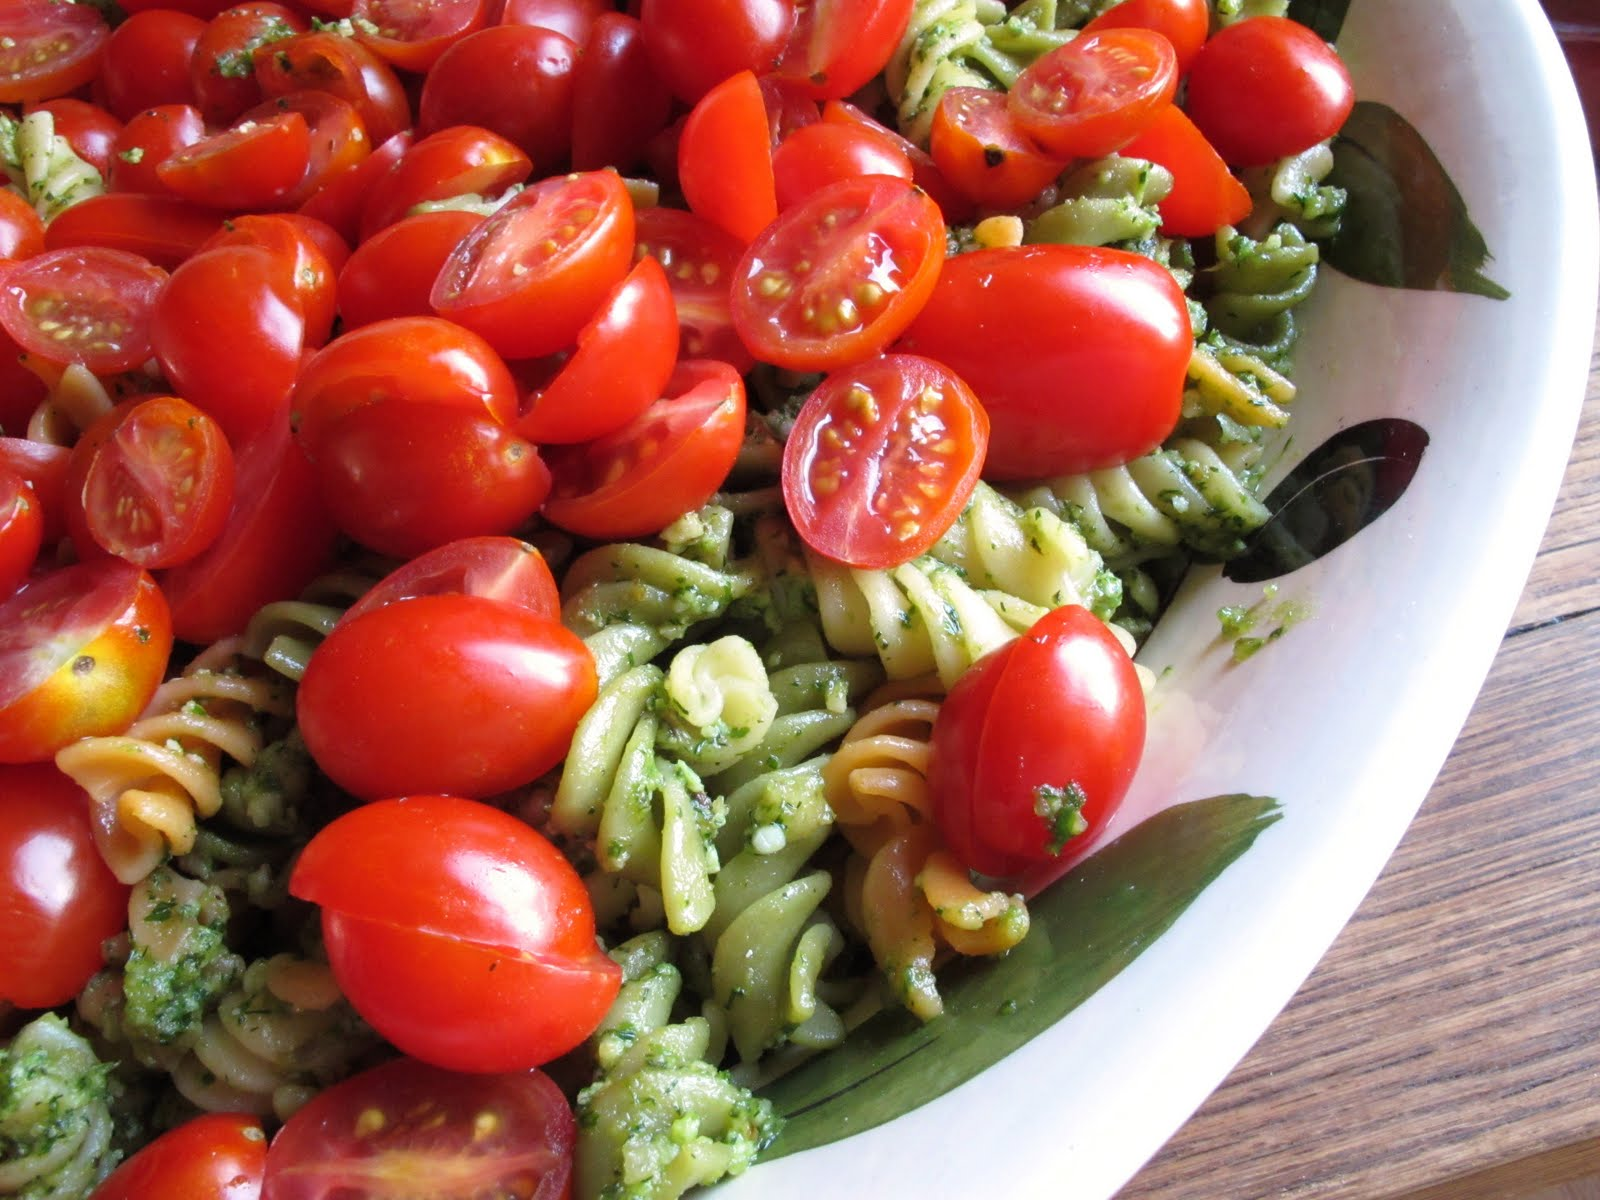 Pasta salad with pesto and cherry tomatoes